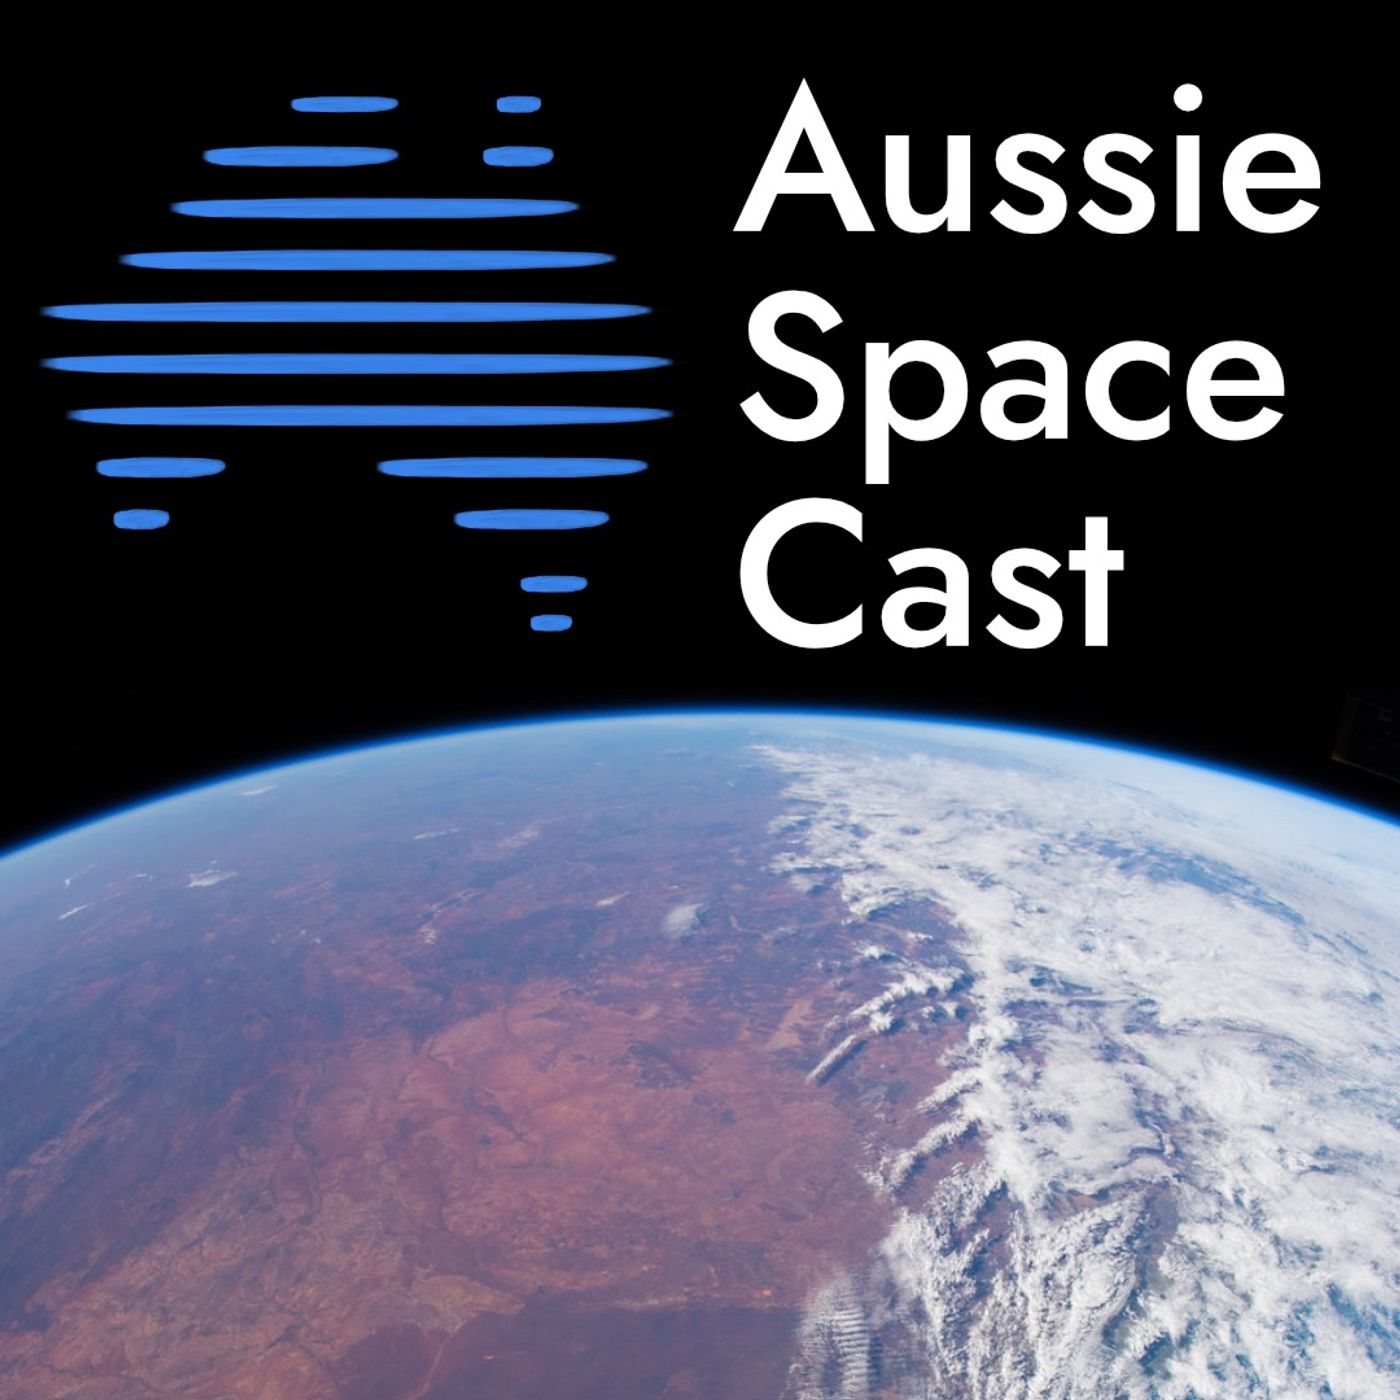 6. What is the Australian Space Agency up to?